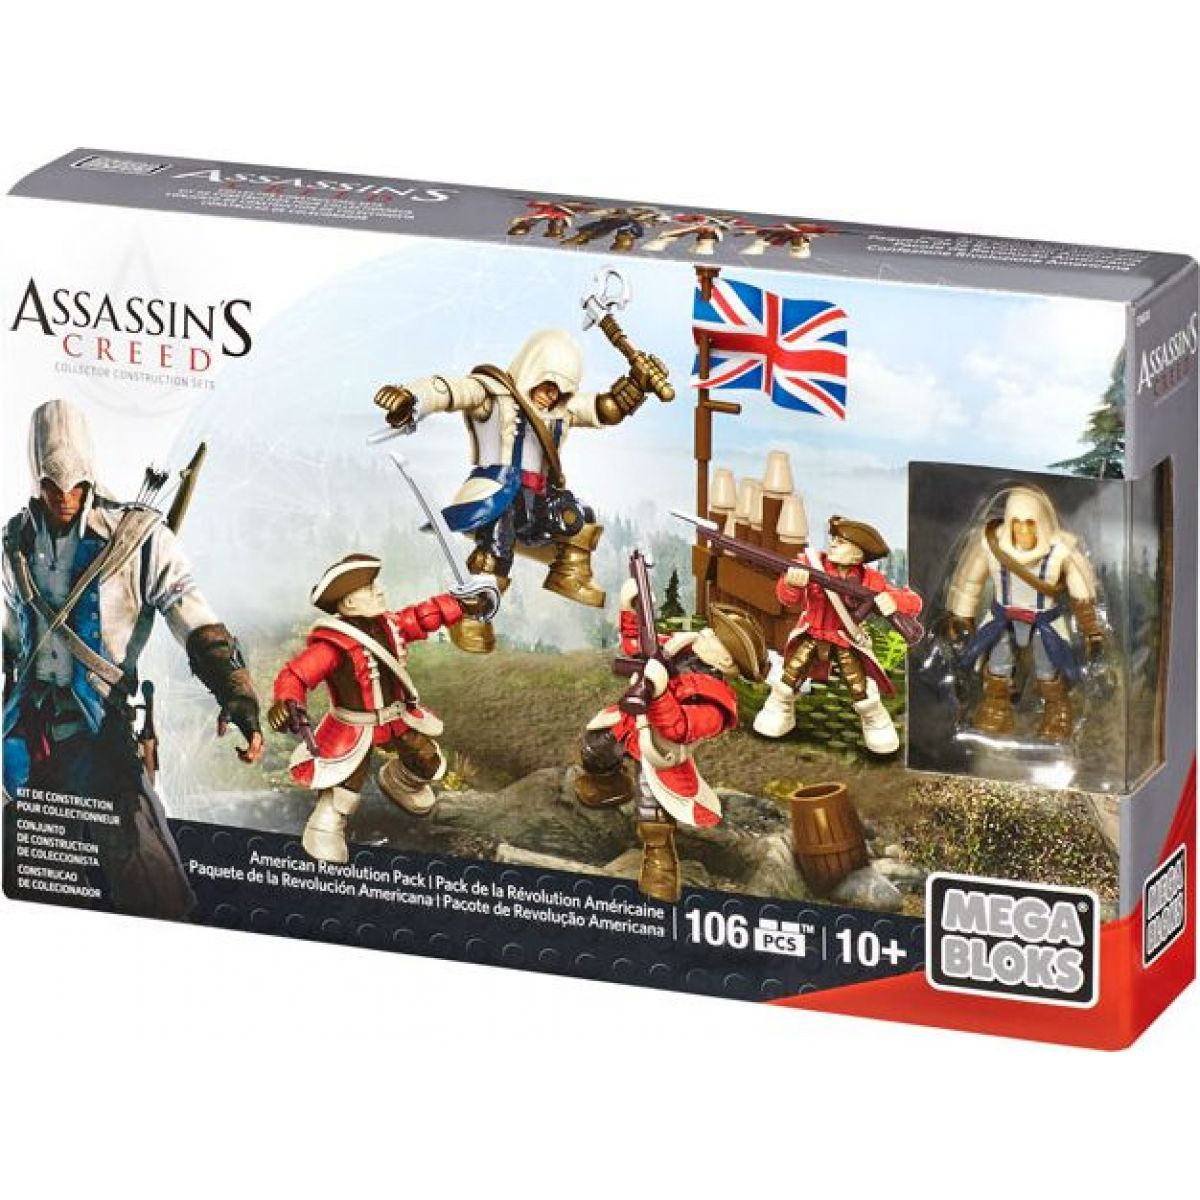 Megabloks Assassin's Creed bojový prapor - American Revolution Pack